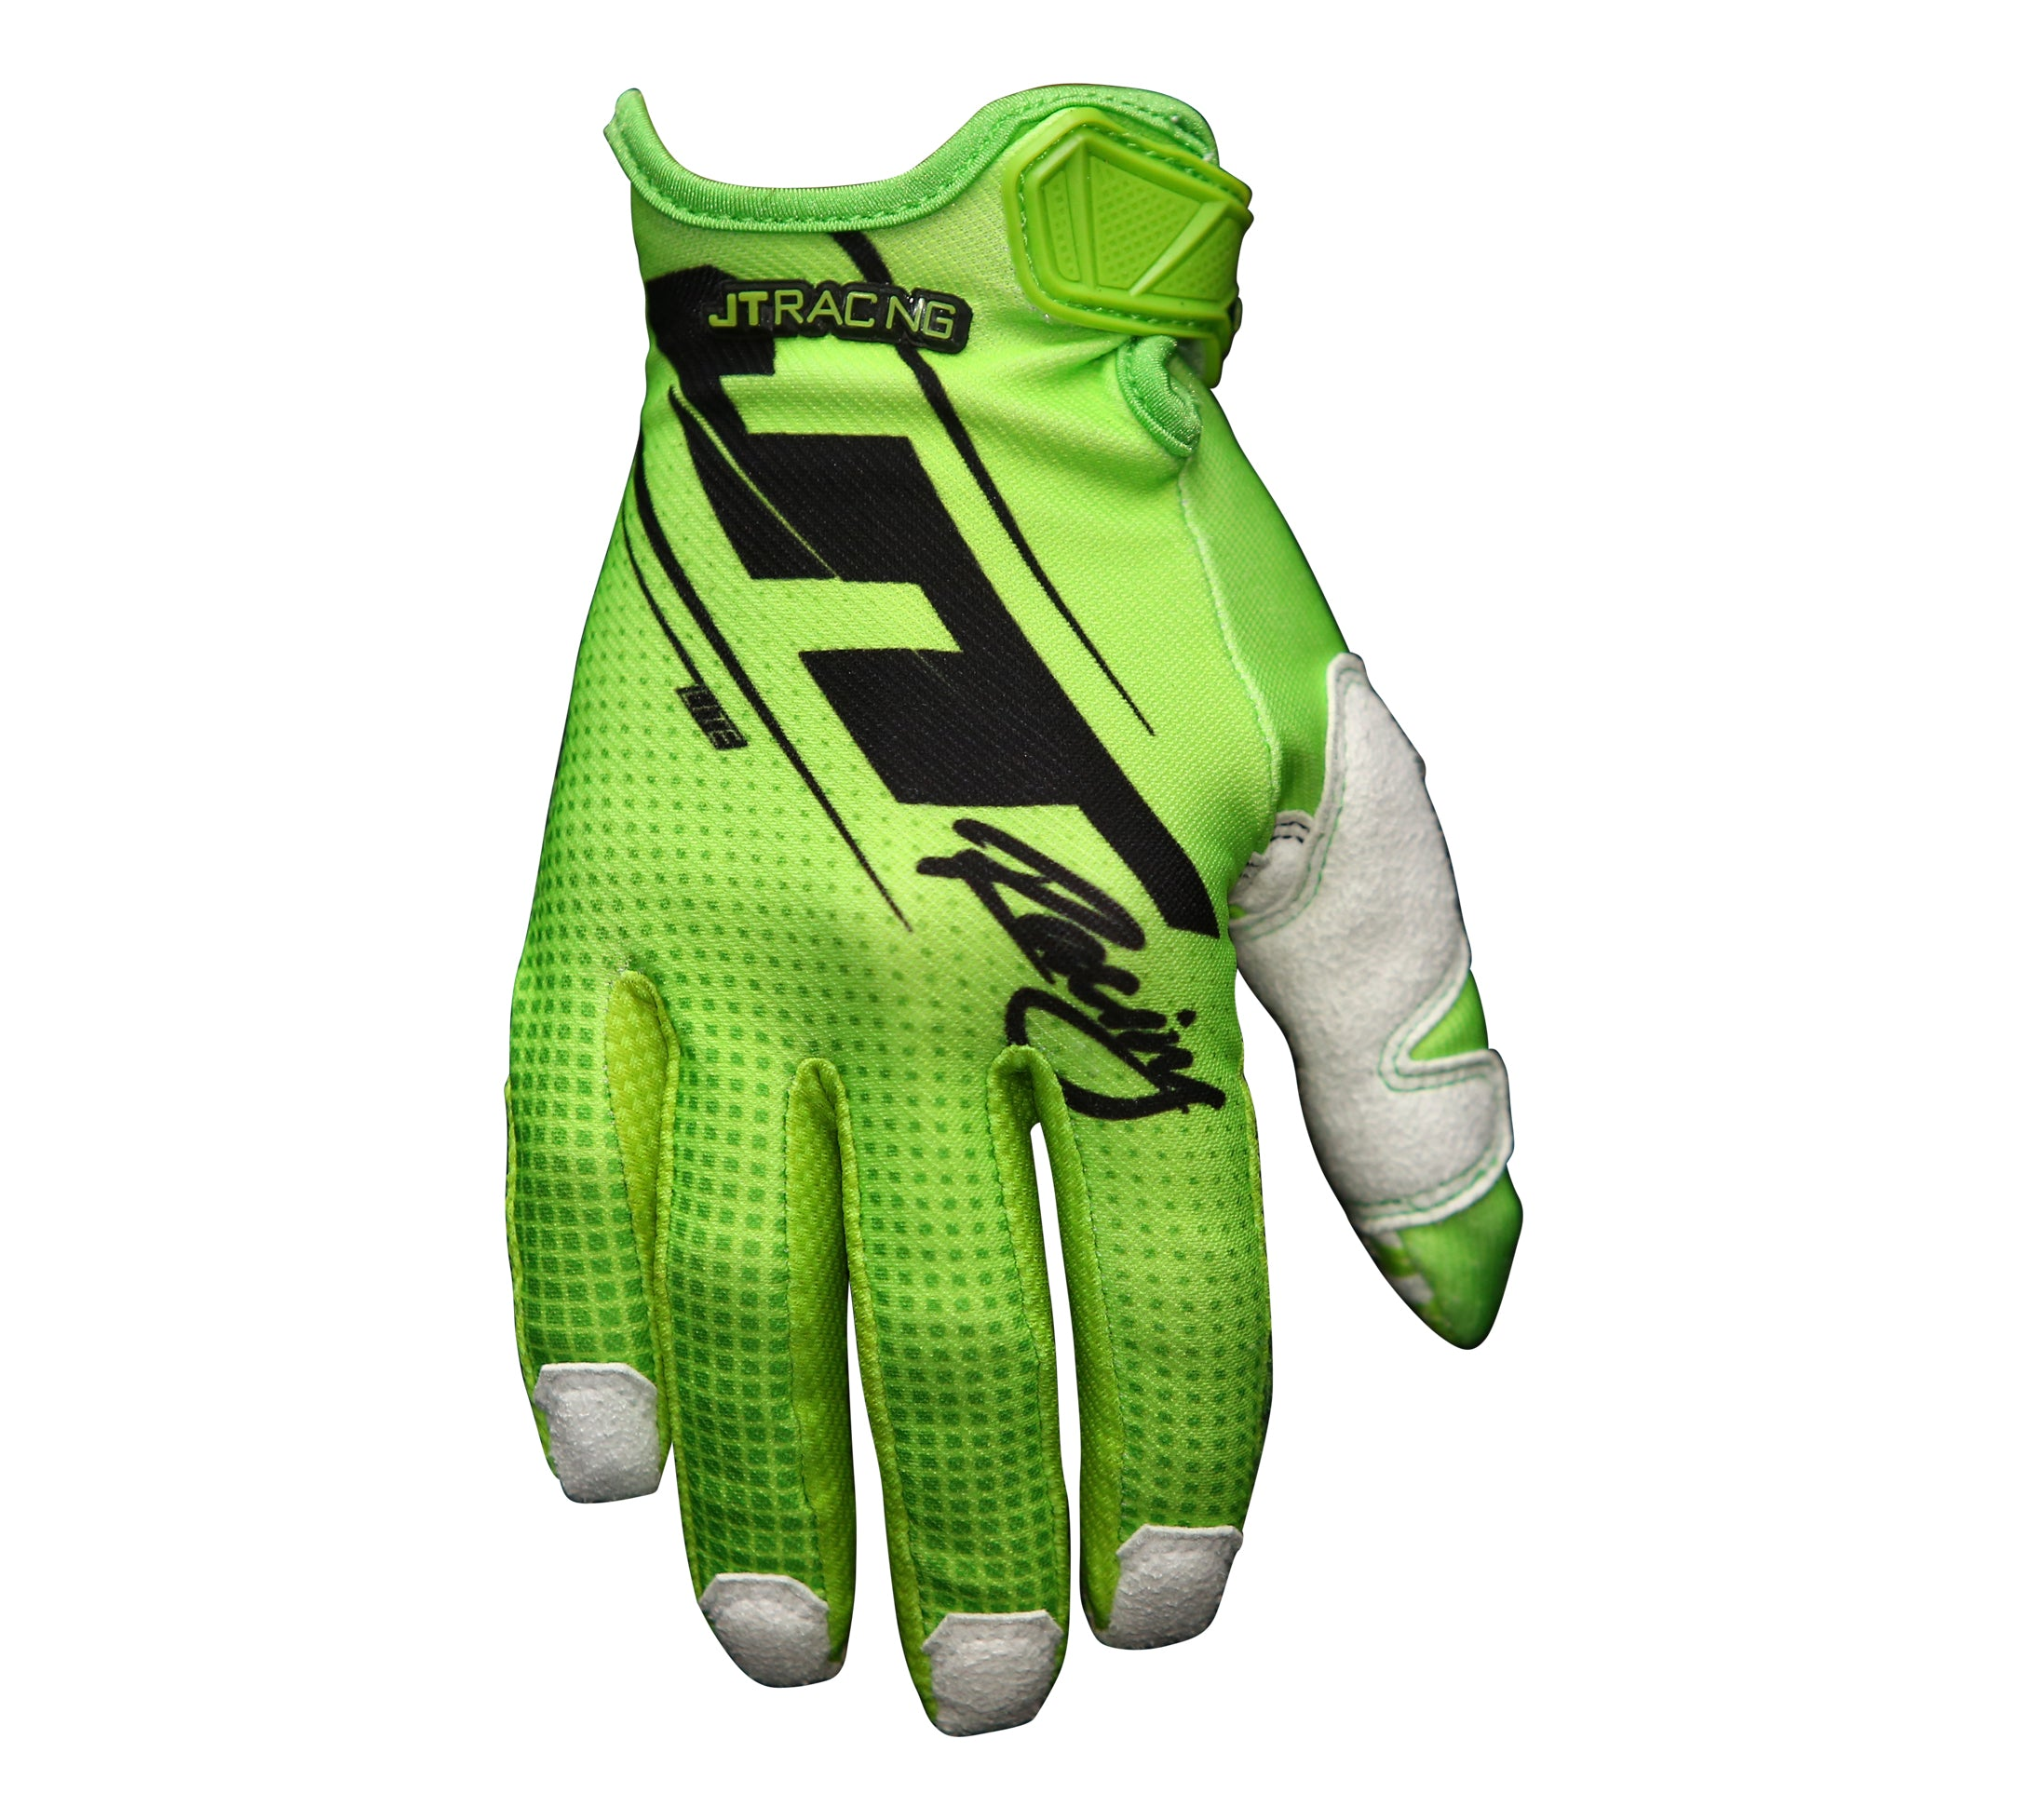 JT Racing USA-Lite16- Slasher Gloves, Fluro Green